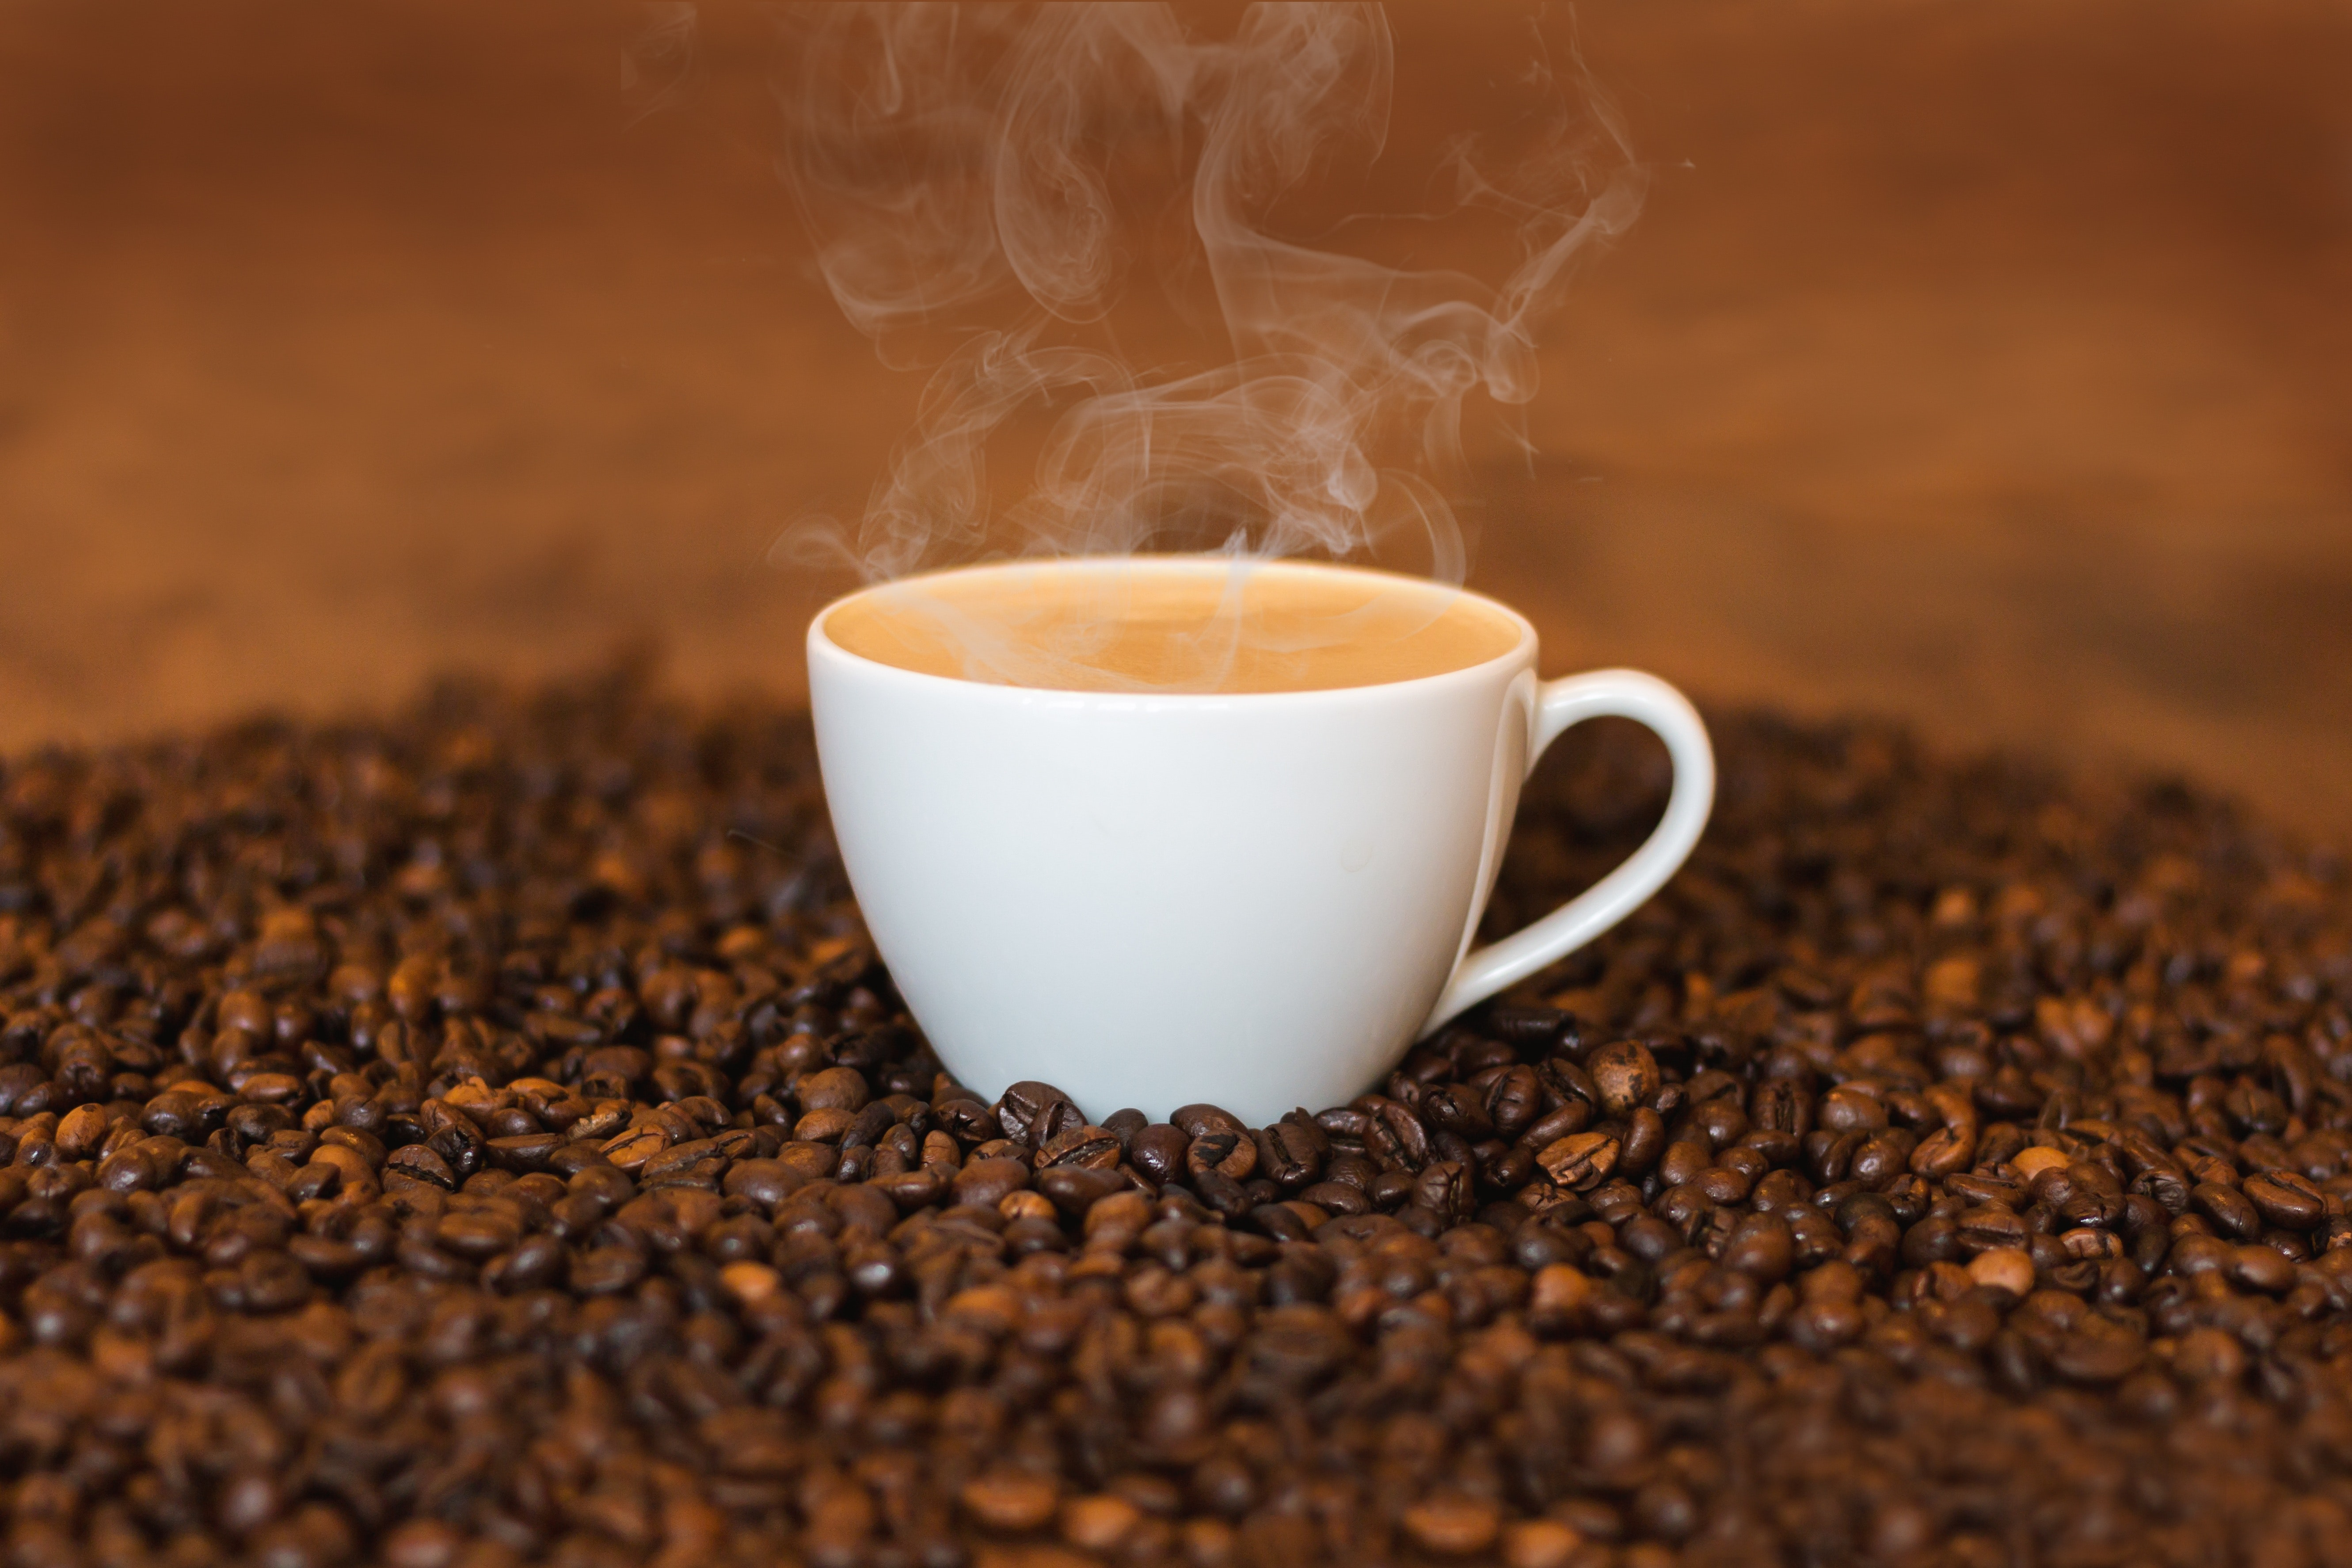 Learn about a brief history of Lavazza coffee.